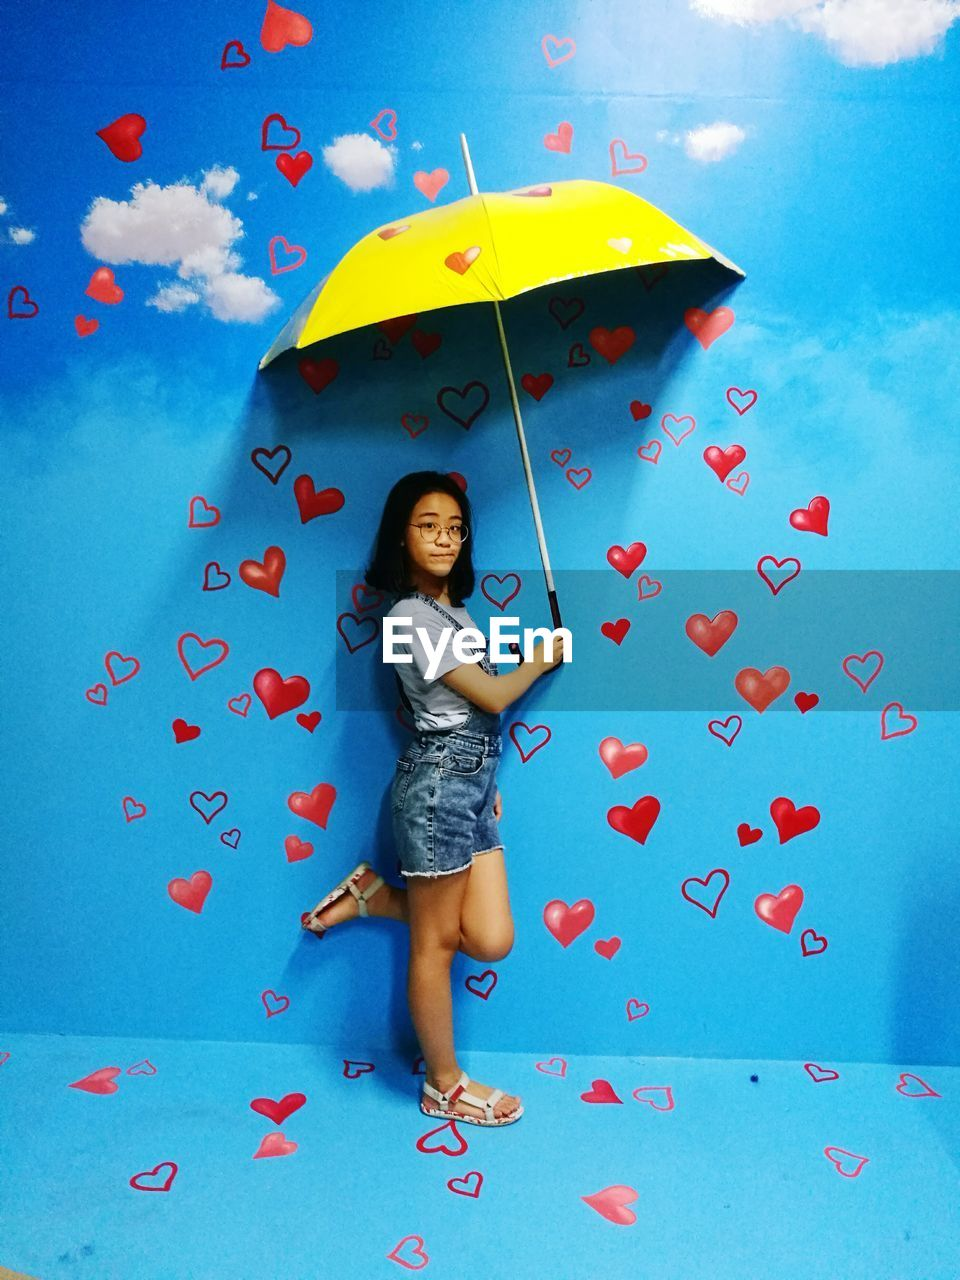 Portrait Of Young Girl Holding Umbrella While Standing Against Blue Wall With Heart Shape